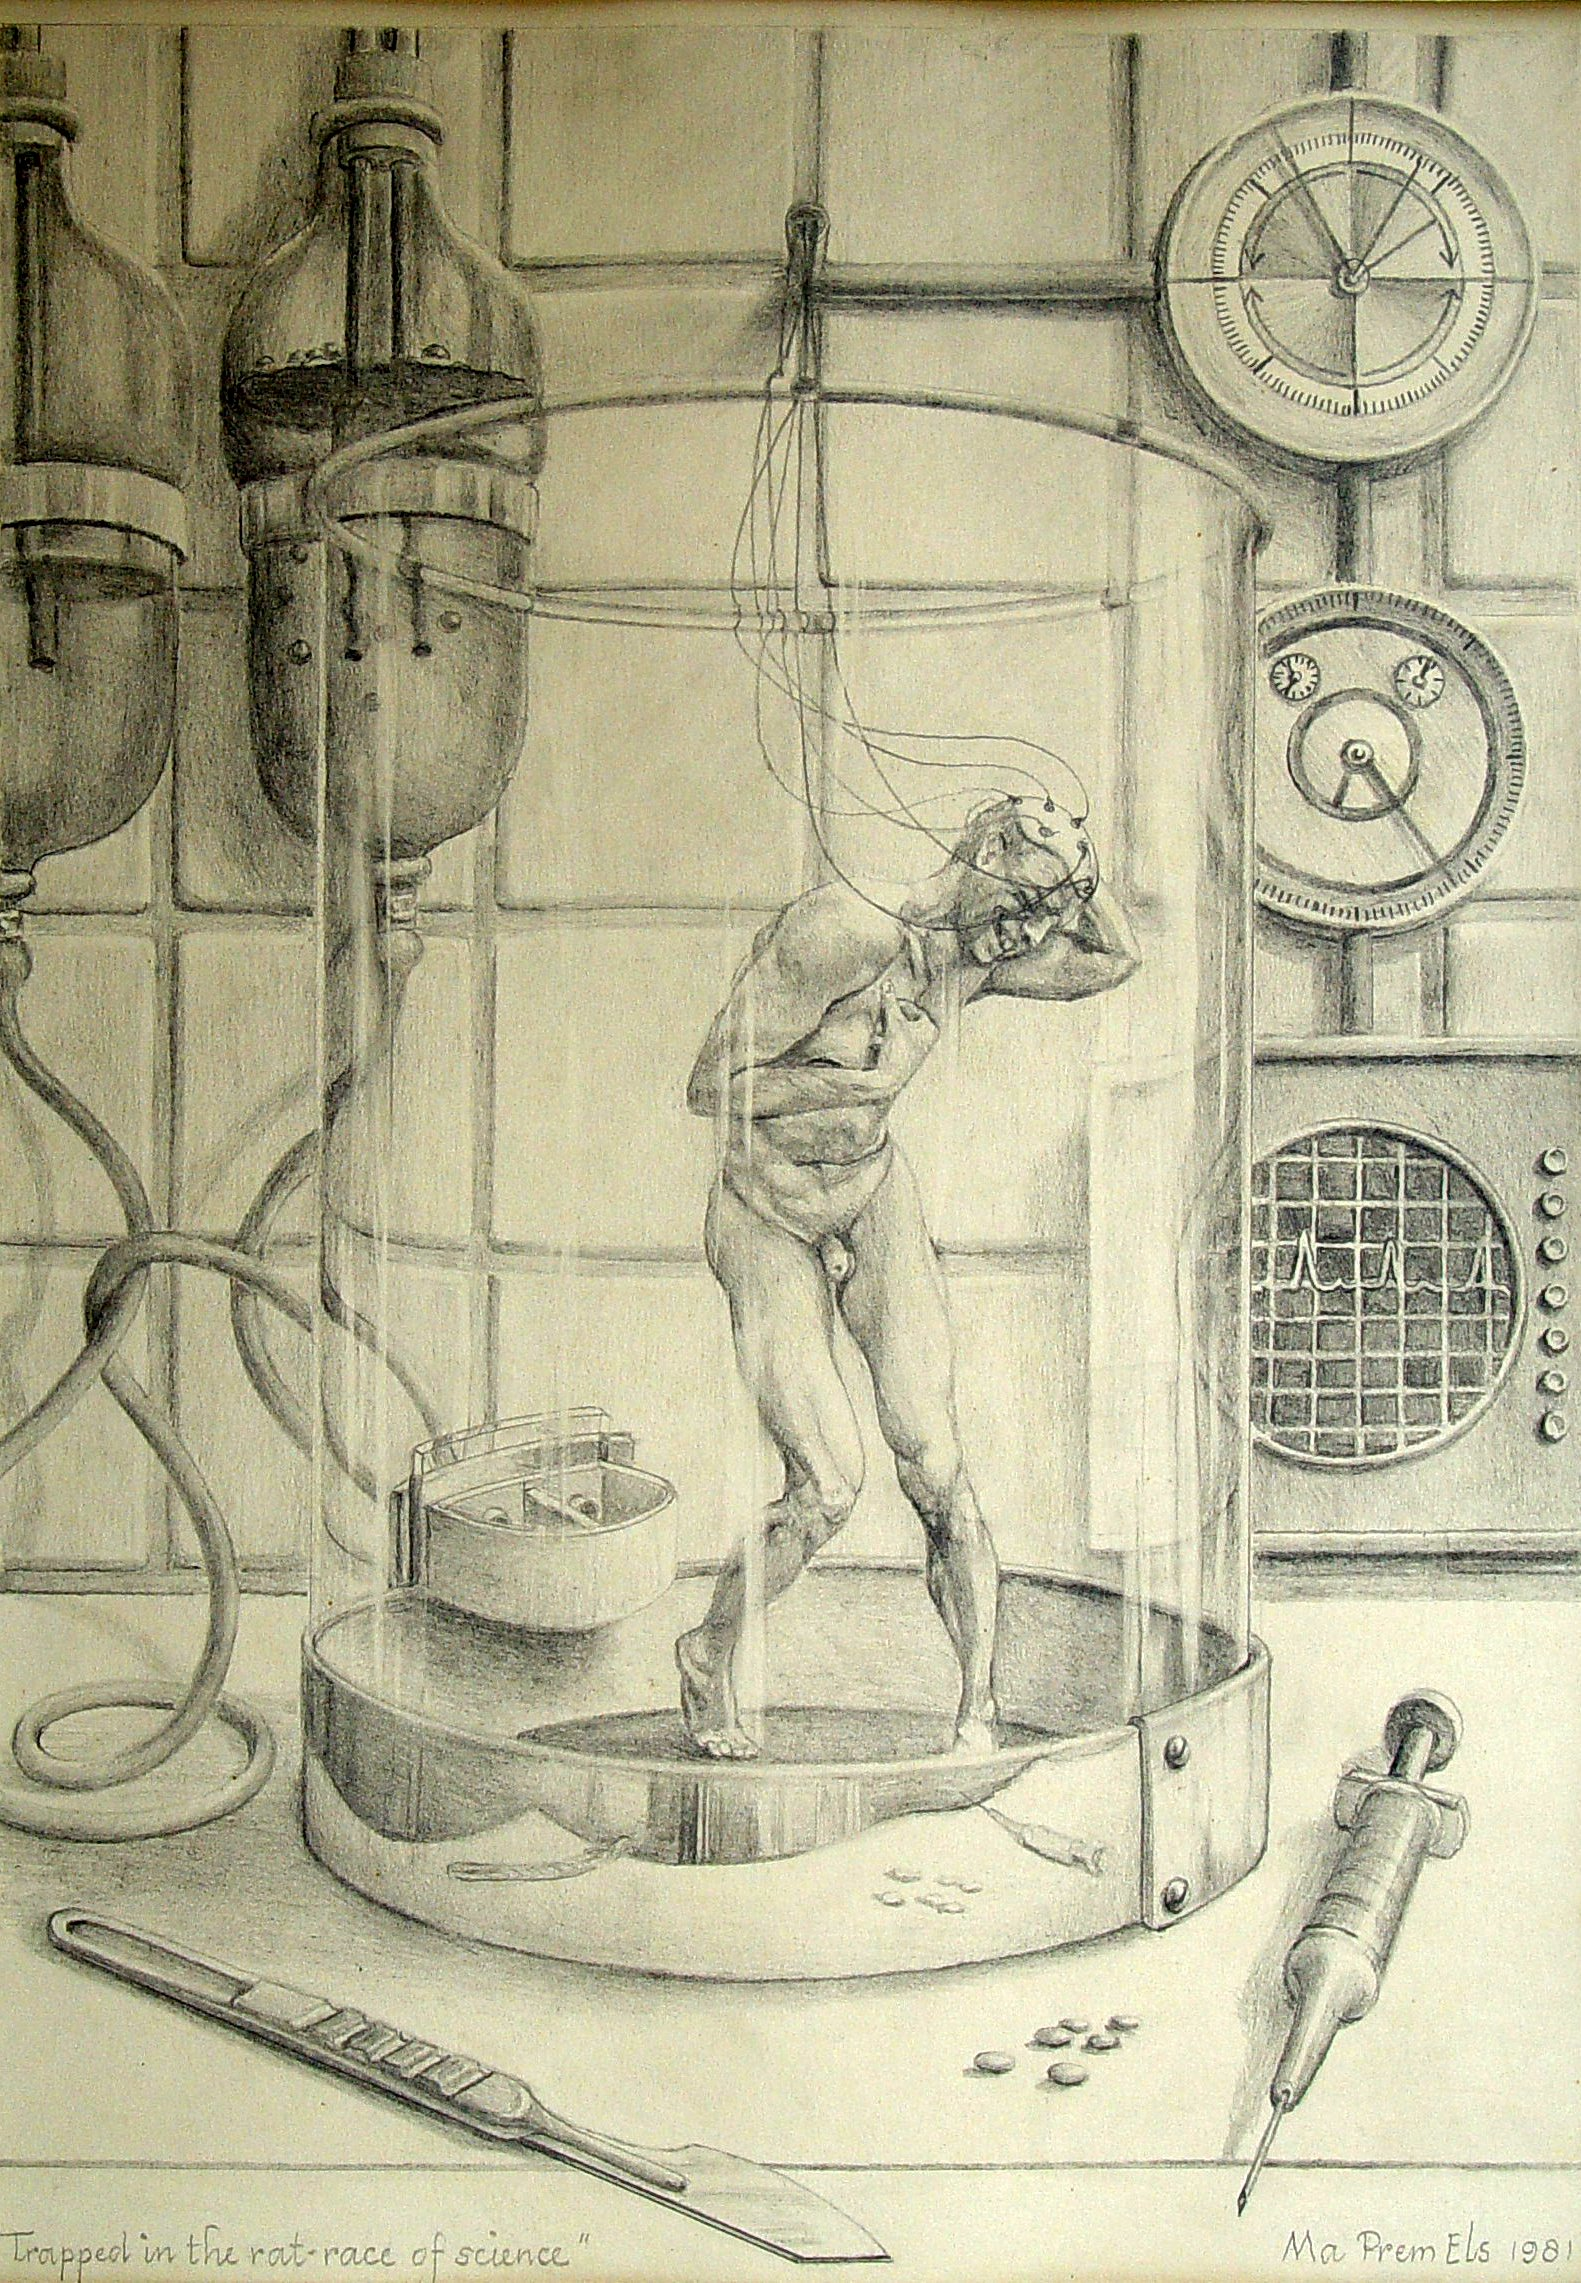 Trapped in the ratrace of science